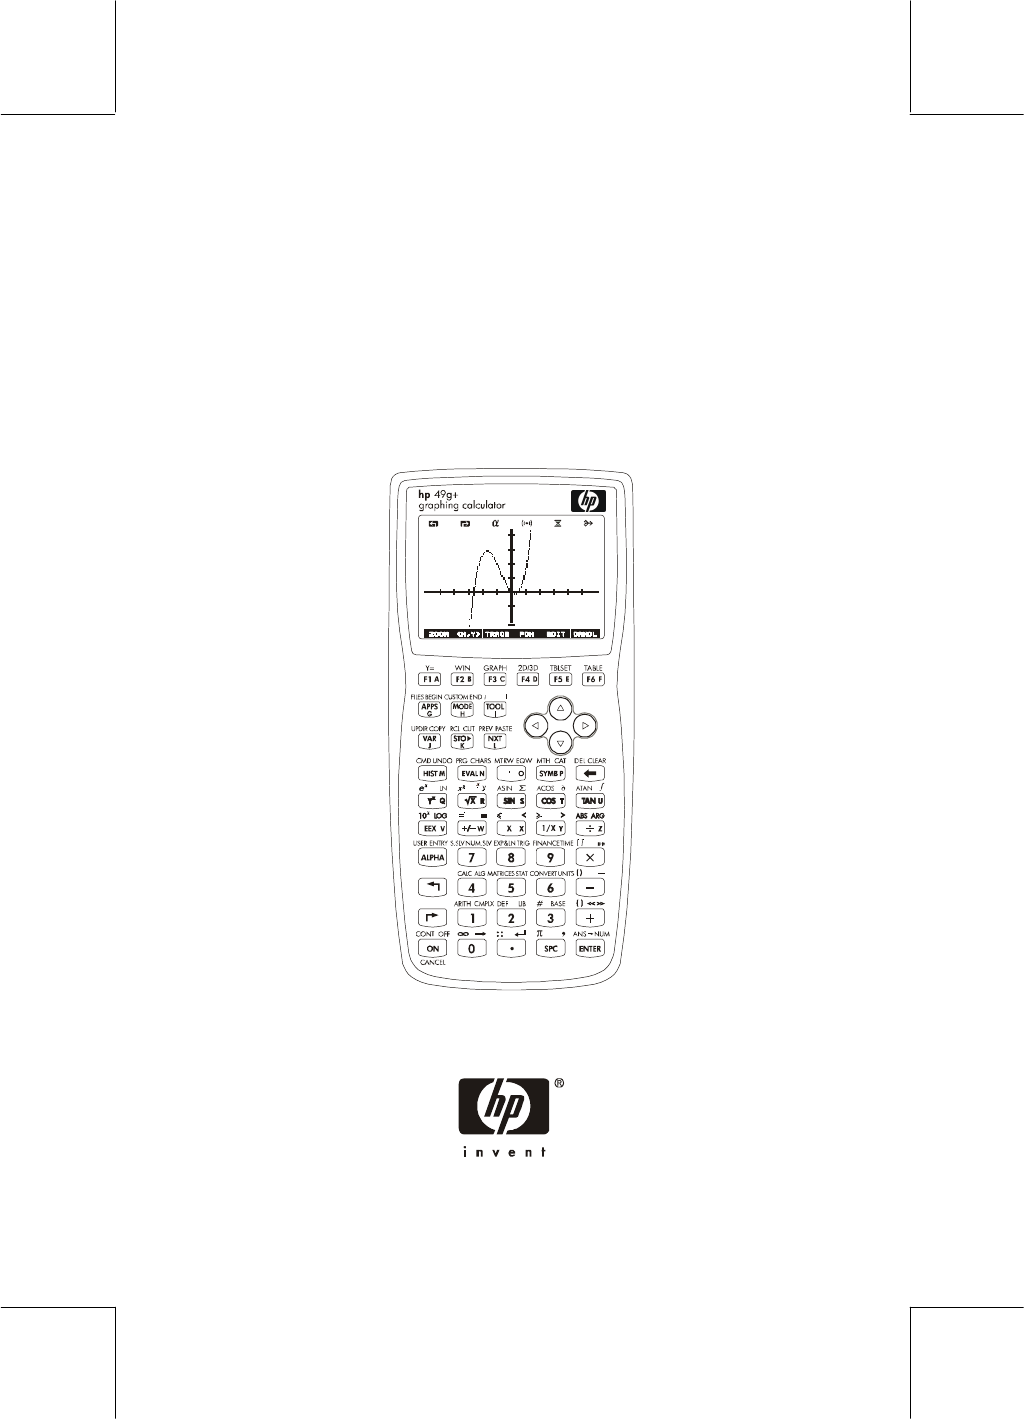 HP (Hewlett-Packard) Calculator hp 49g+ User Guide